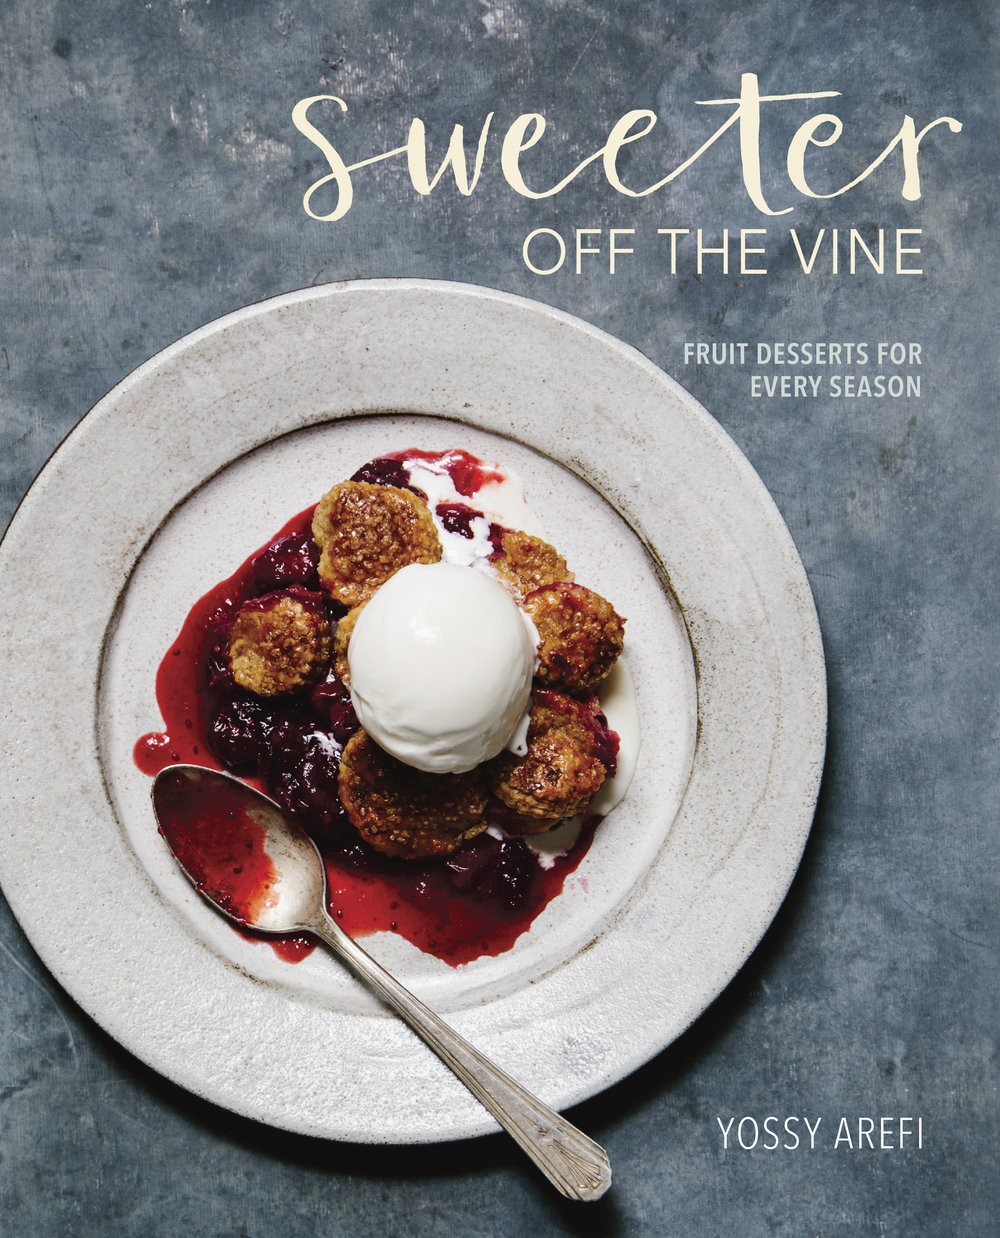 Sweeter off the Vine: Fruit Desserts for Every Season by Yossy Arefi